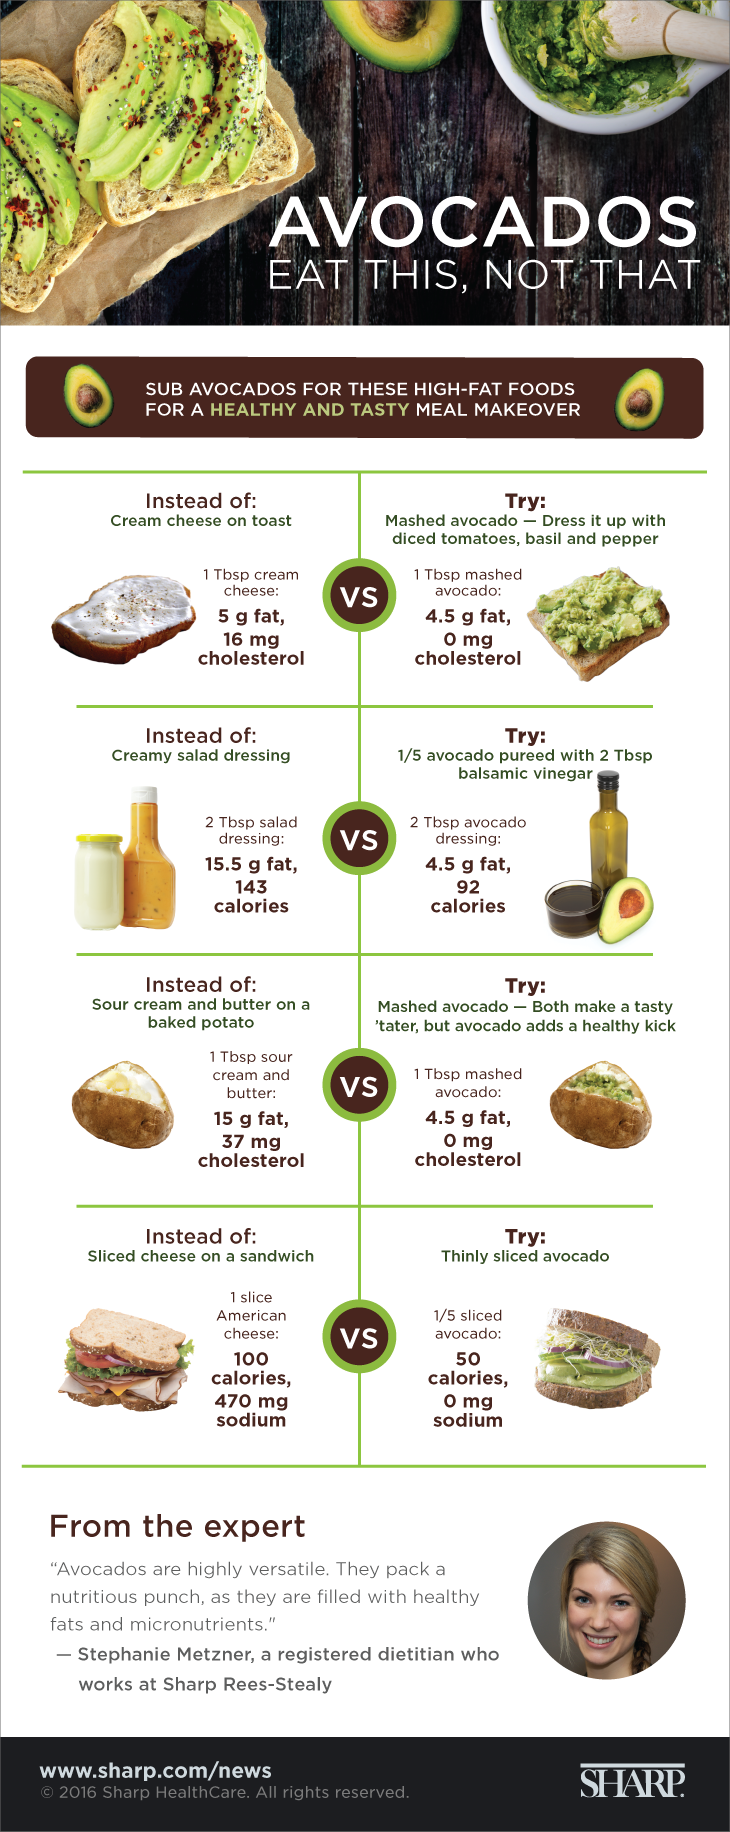 Avocados eat this not that infographic